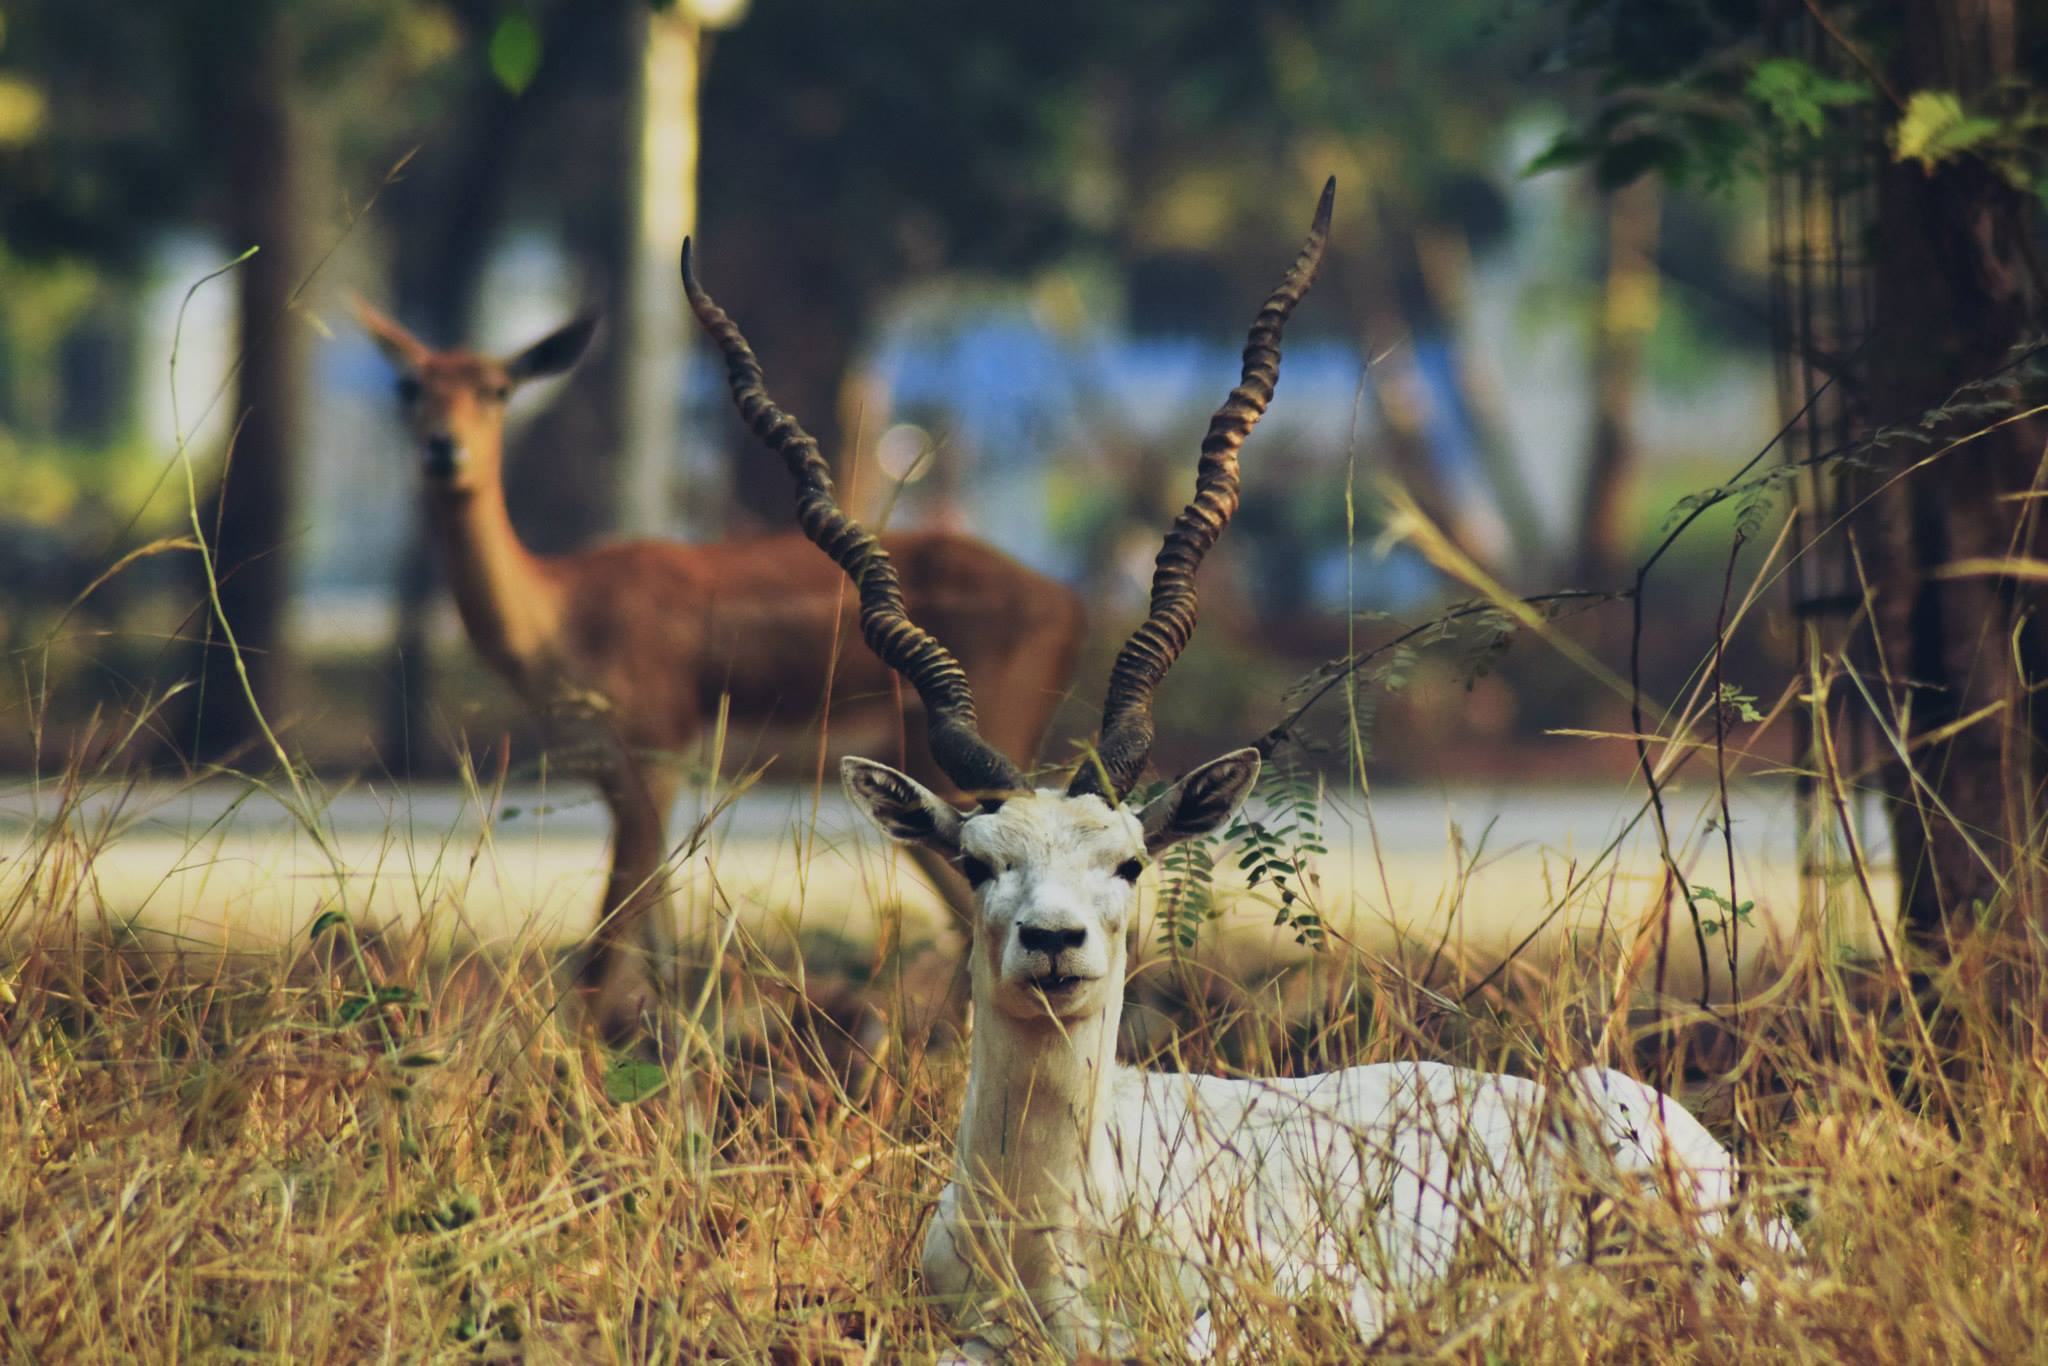 A rare white blackbuck on the IIT campus. (Photo credit: Saarang, IIT-Madras, via Facebook).